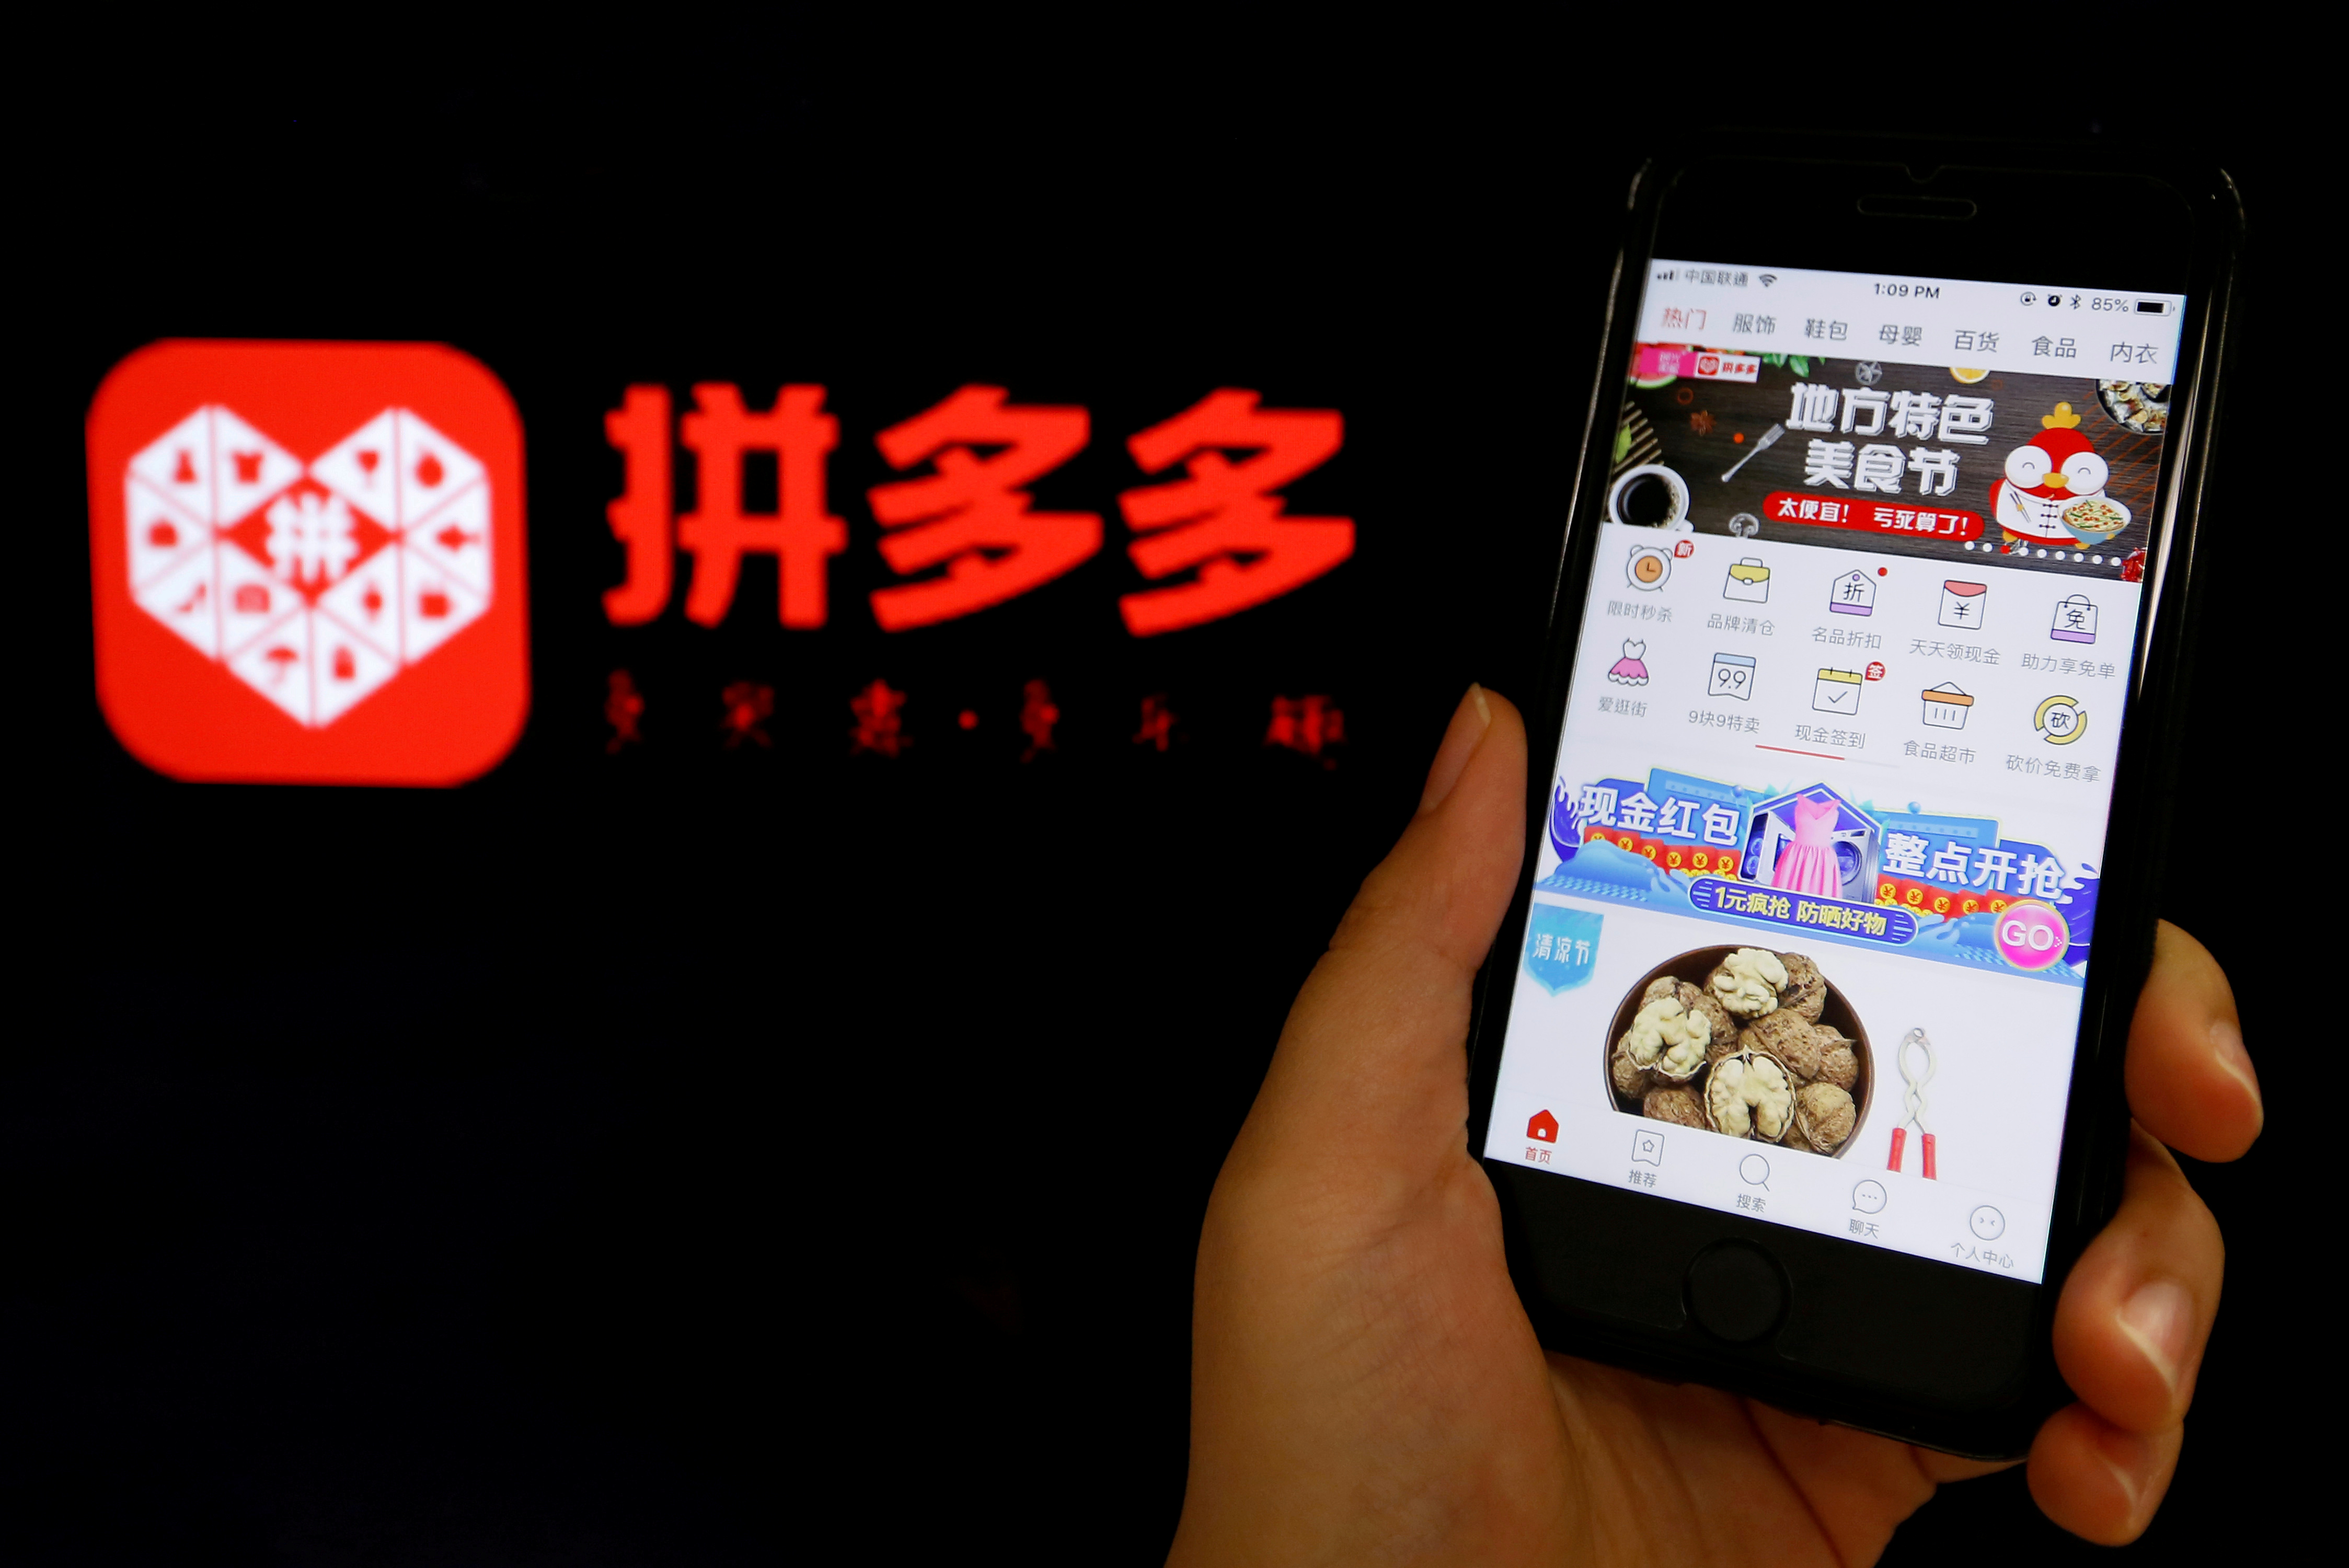 The logo of Chinese online group discounter Pinduoduo is seen next to its mobile phone app in this illustration picture taken July 17, 2018. REUTERS/Florence Lo/Illustration/File Photo